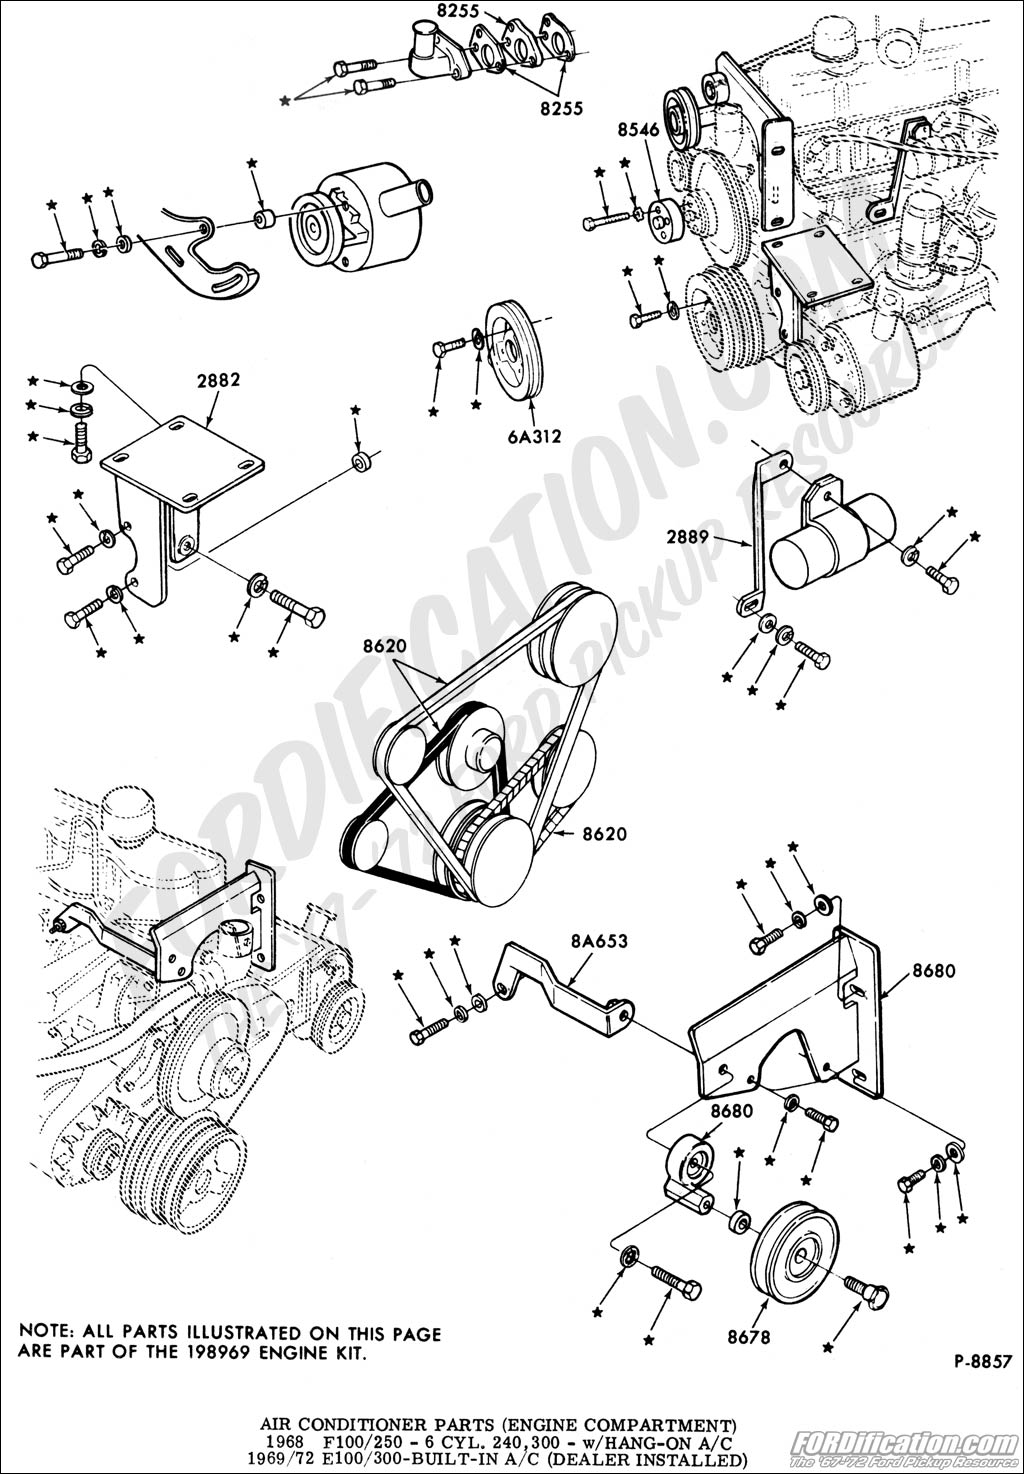 Acparts Engcomp on Camaro Engine Diagram